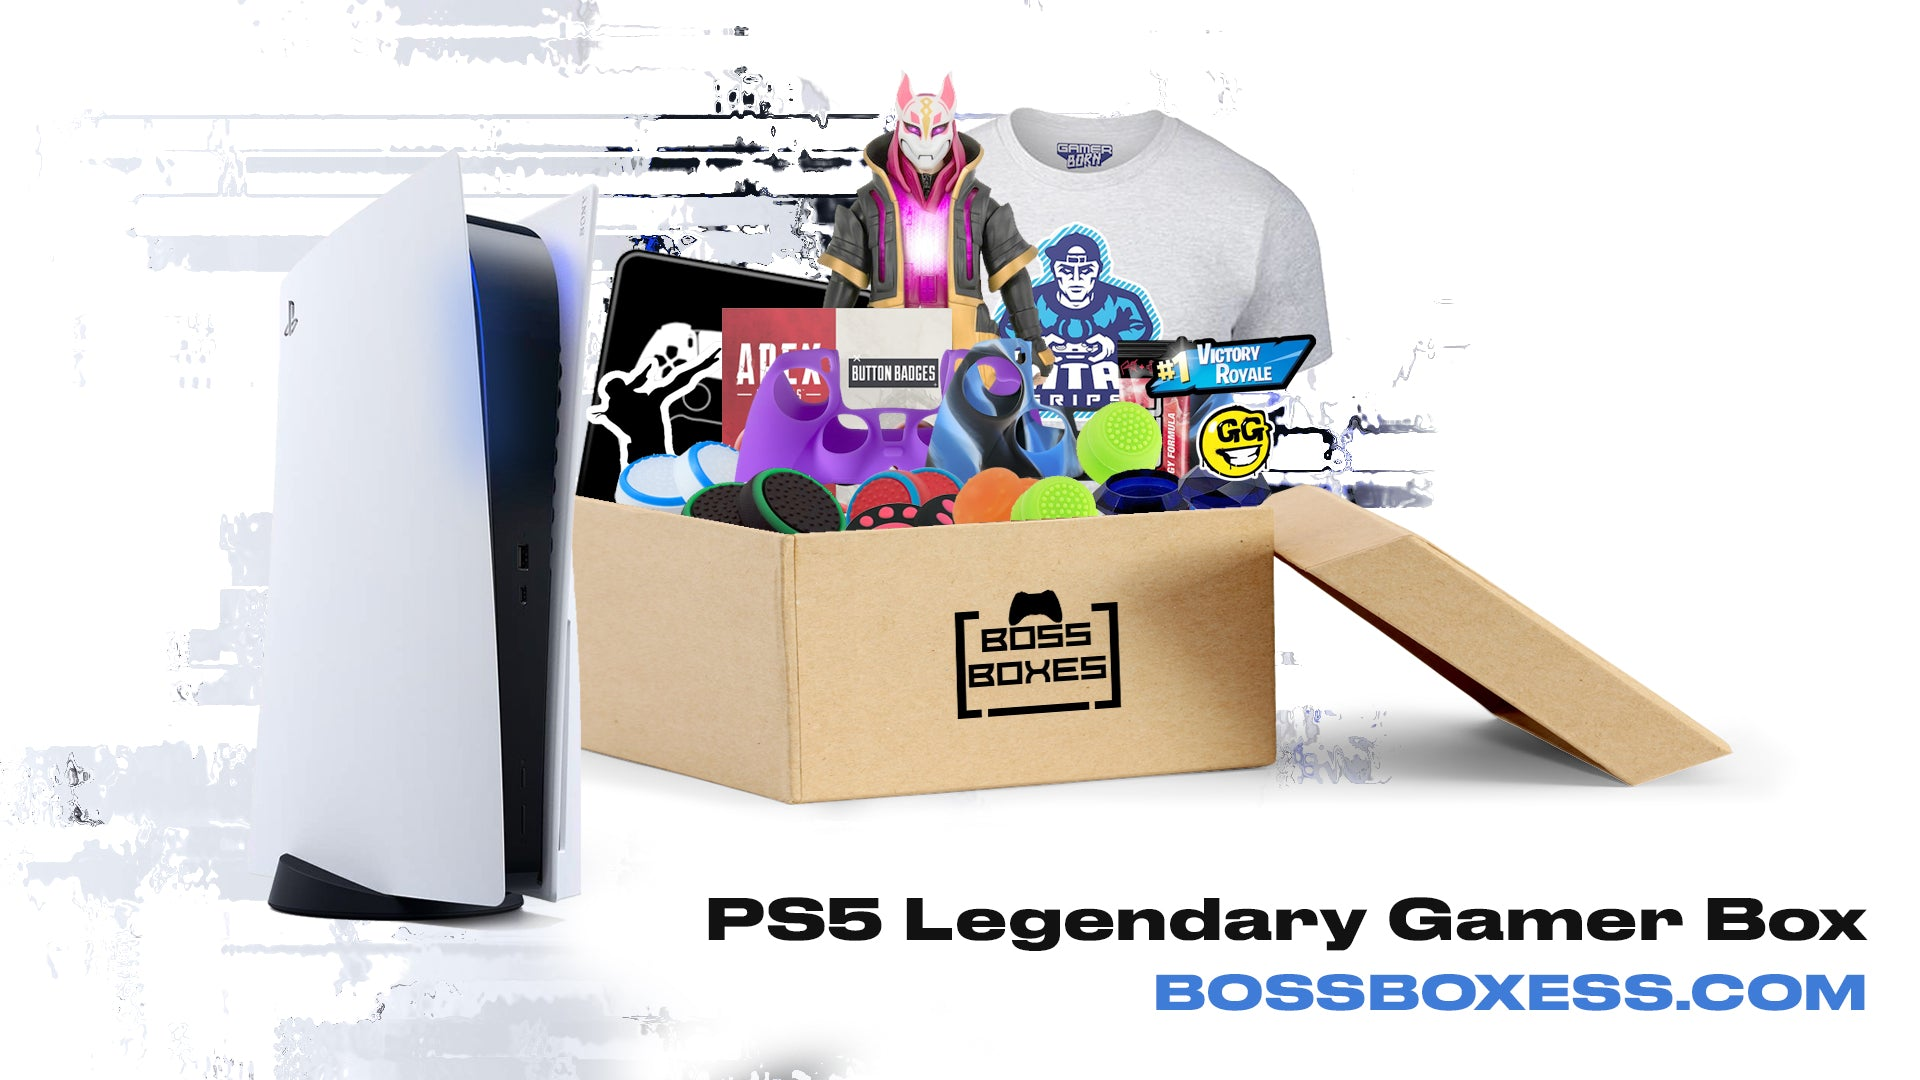 PS5 Legendary Gamer Box